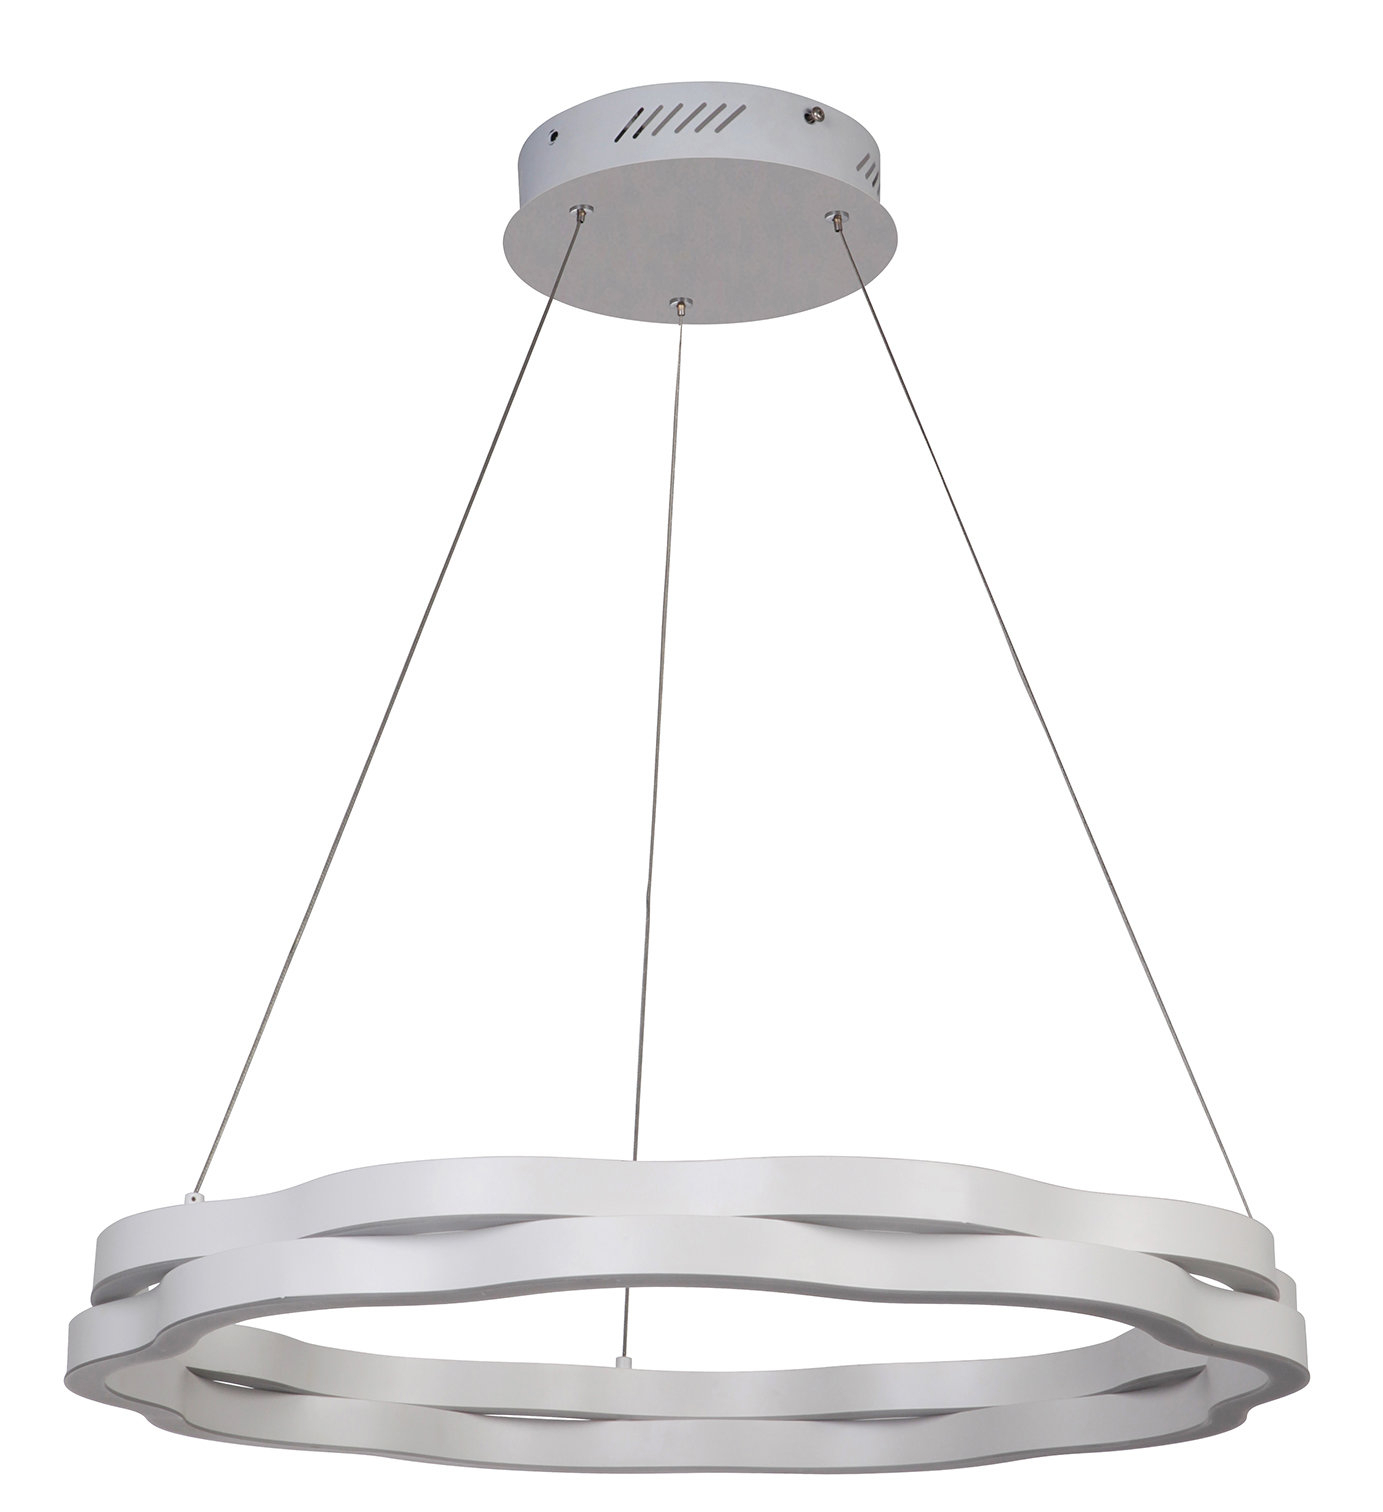 Belgica 1 Light Led Geometric Pendant With Regard To Callington 1 Light Led Single Geometric Pendants (View 4 of 30)